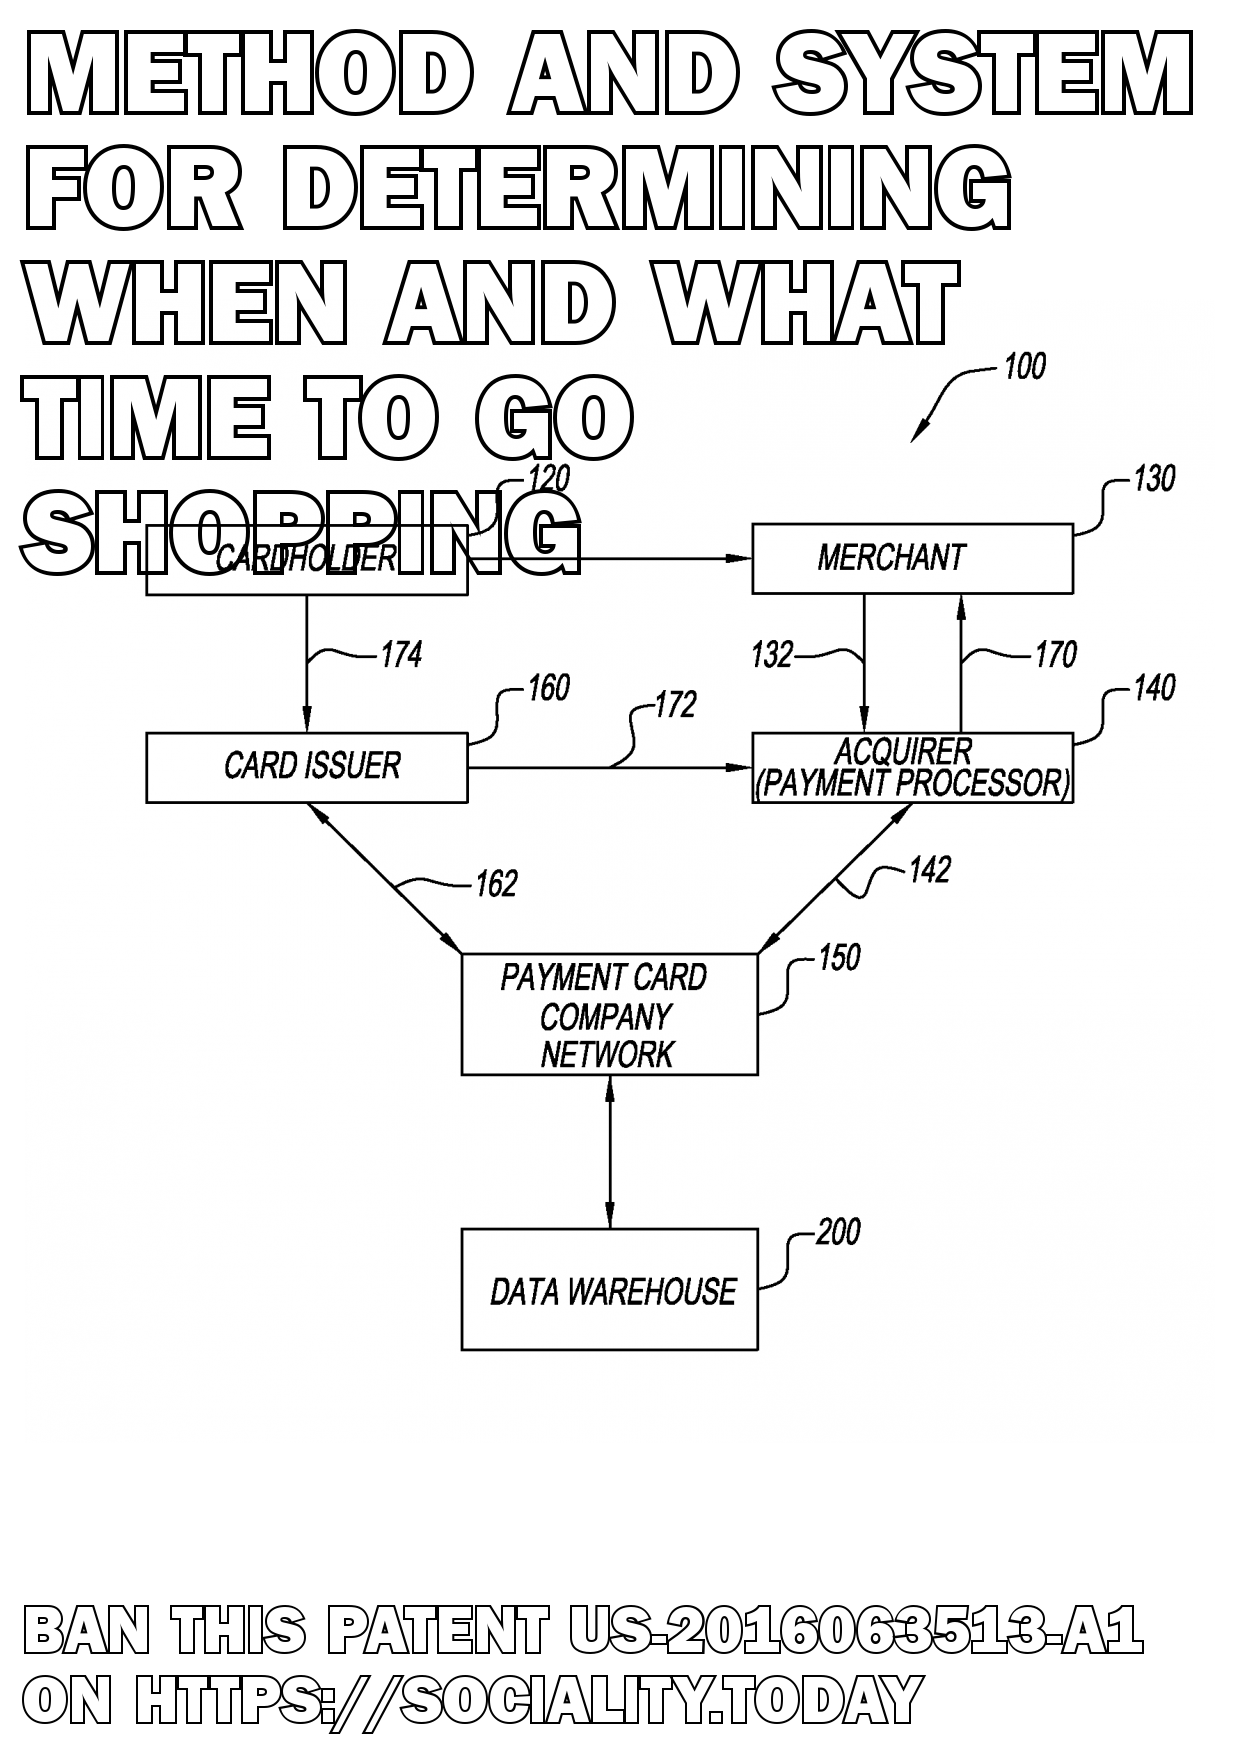 Method and system for determining when and what time to go shopping  - US-2016063513-A1